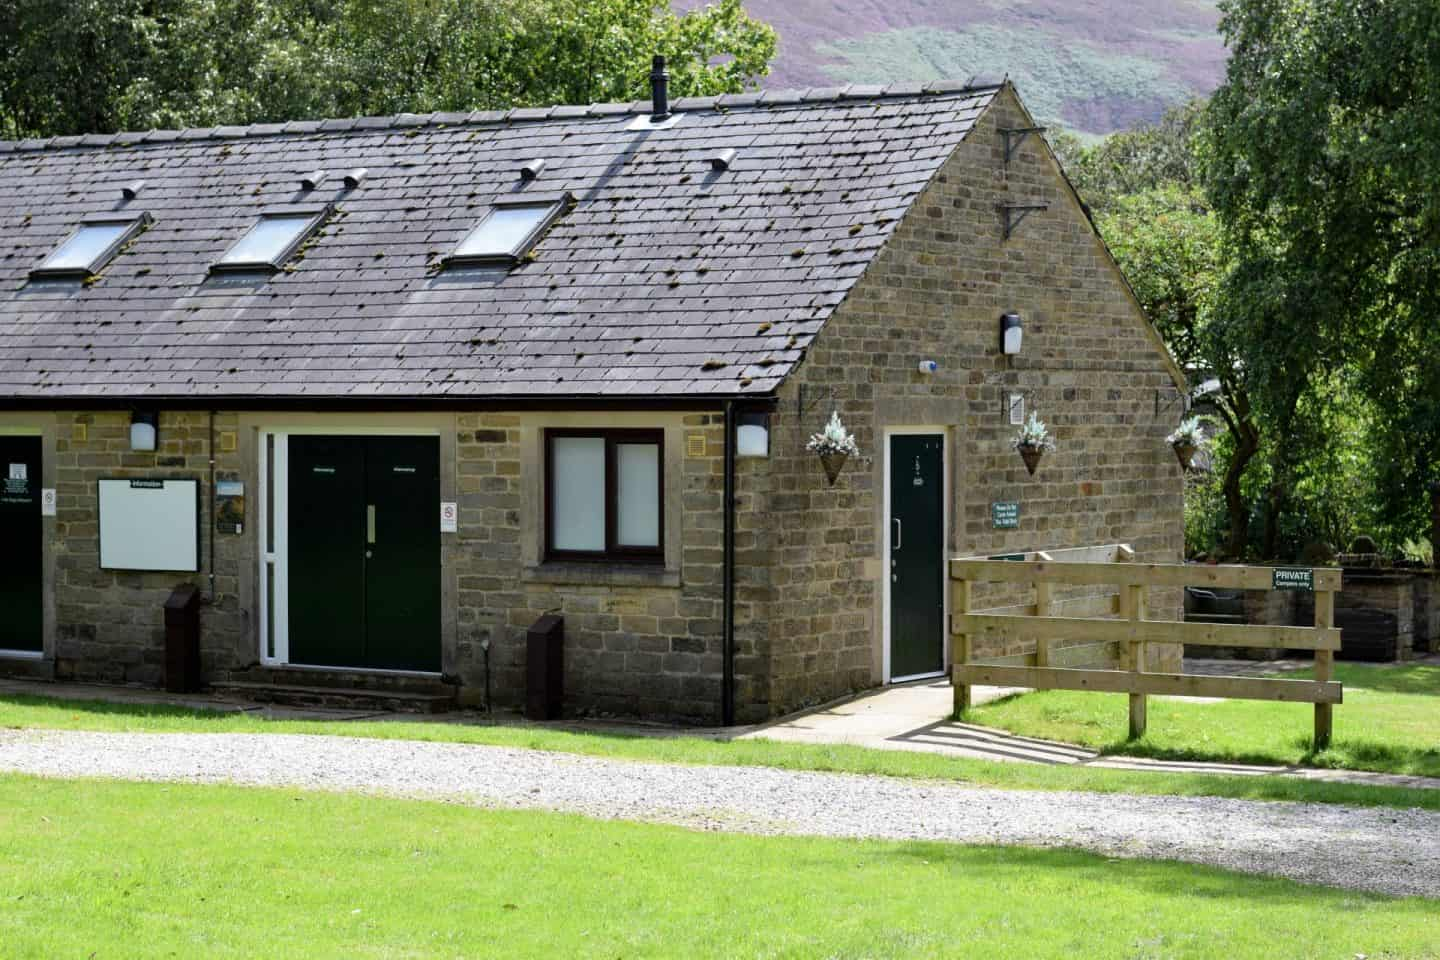 Toilet block at Crowden campsite